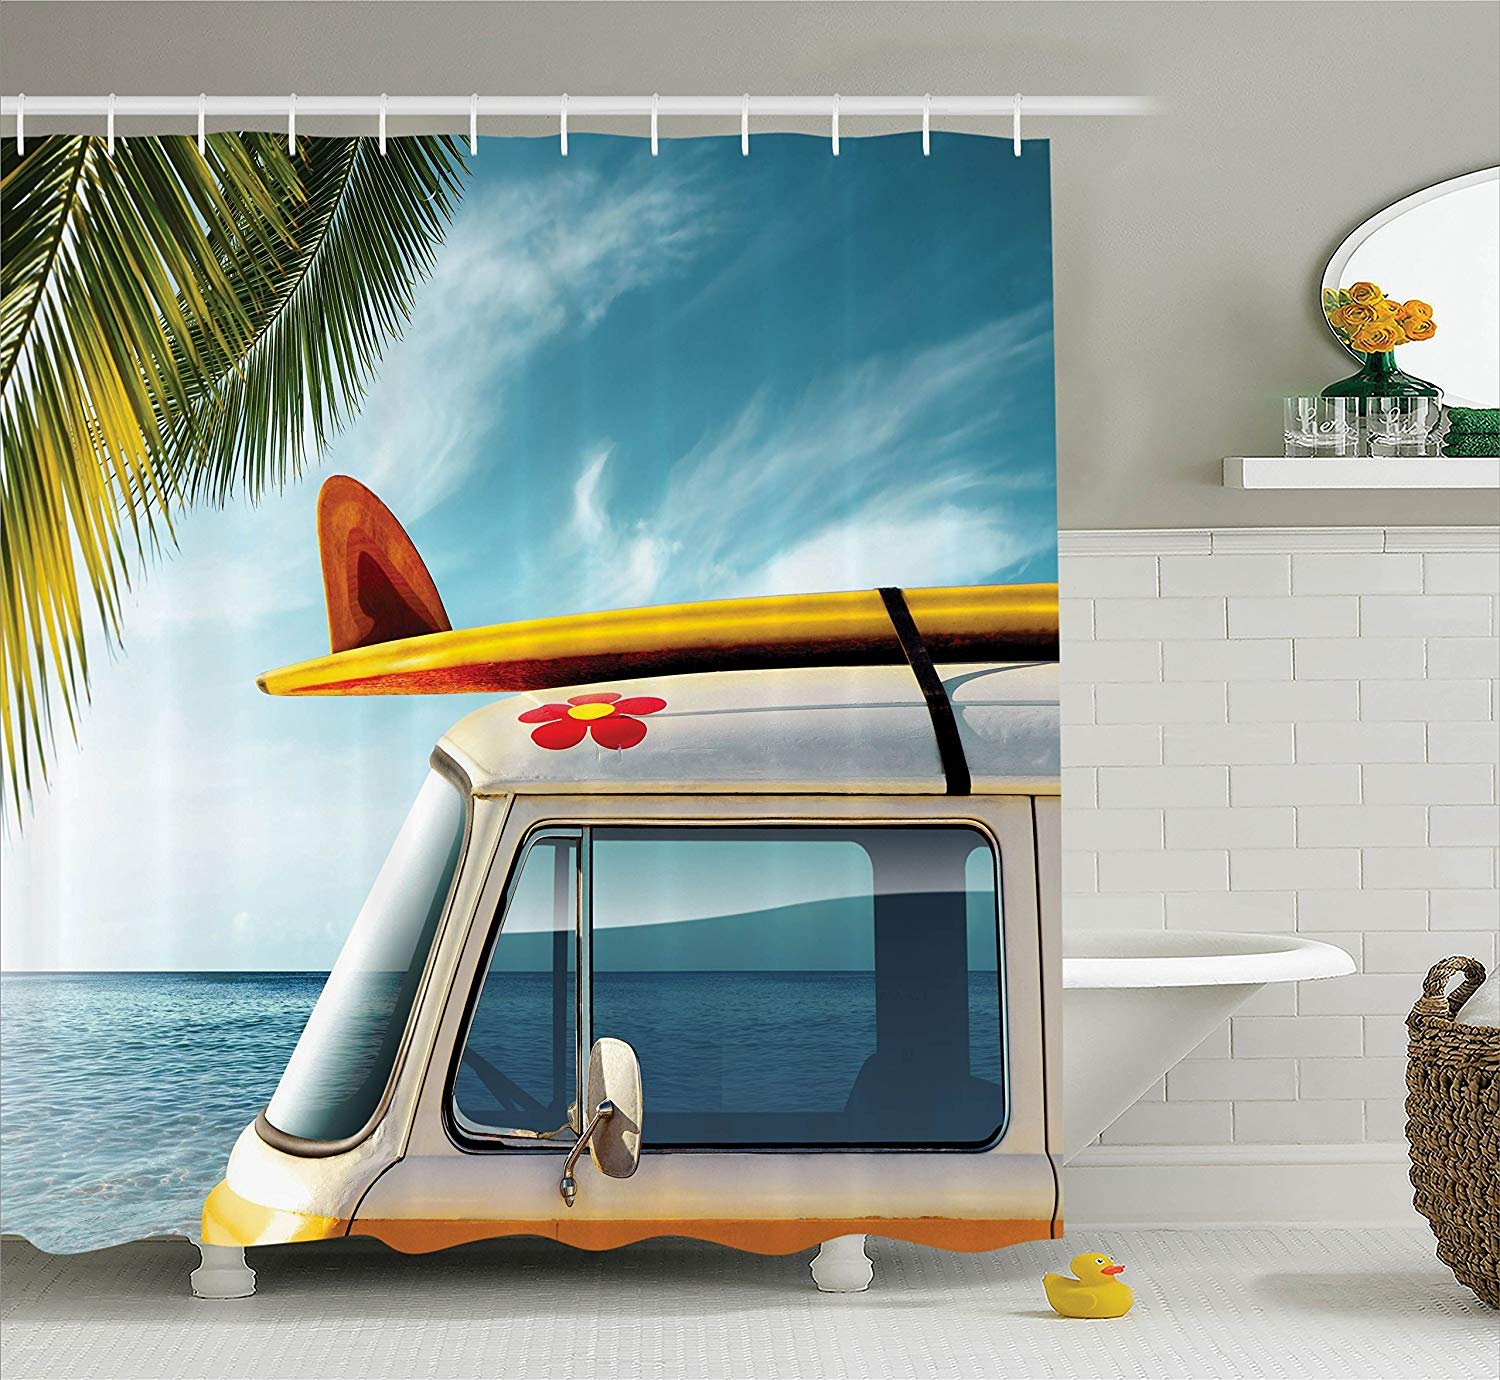 """Ambesonne Surfboard Shower Curtain, Vintage Van in The Beach with a Surfboard on The Roof Journey Spring Sky Season, Cloth Fabric Bathroom Decor Set with Hooks, 70"""" Long, Yellow"""